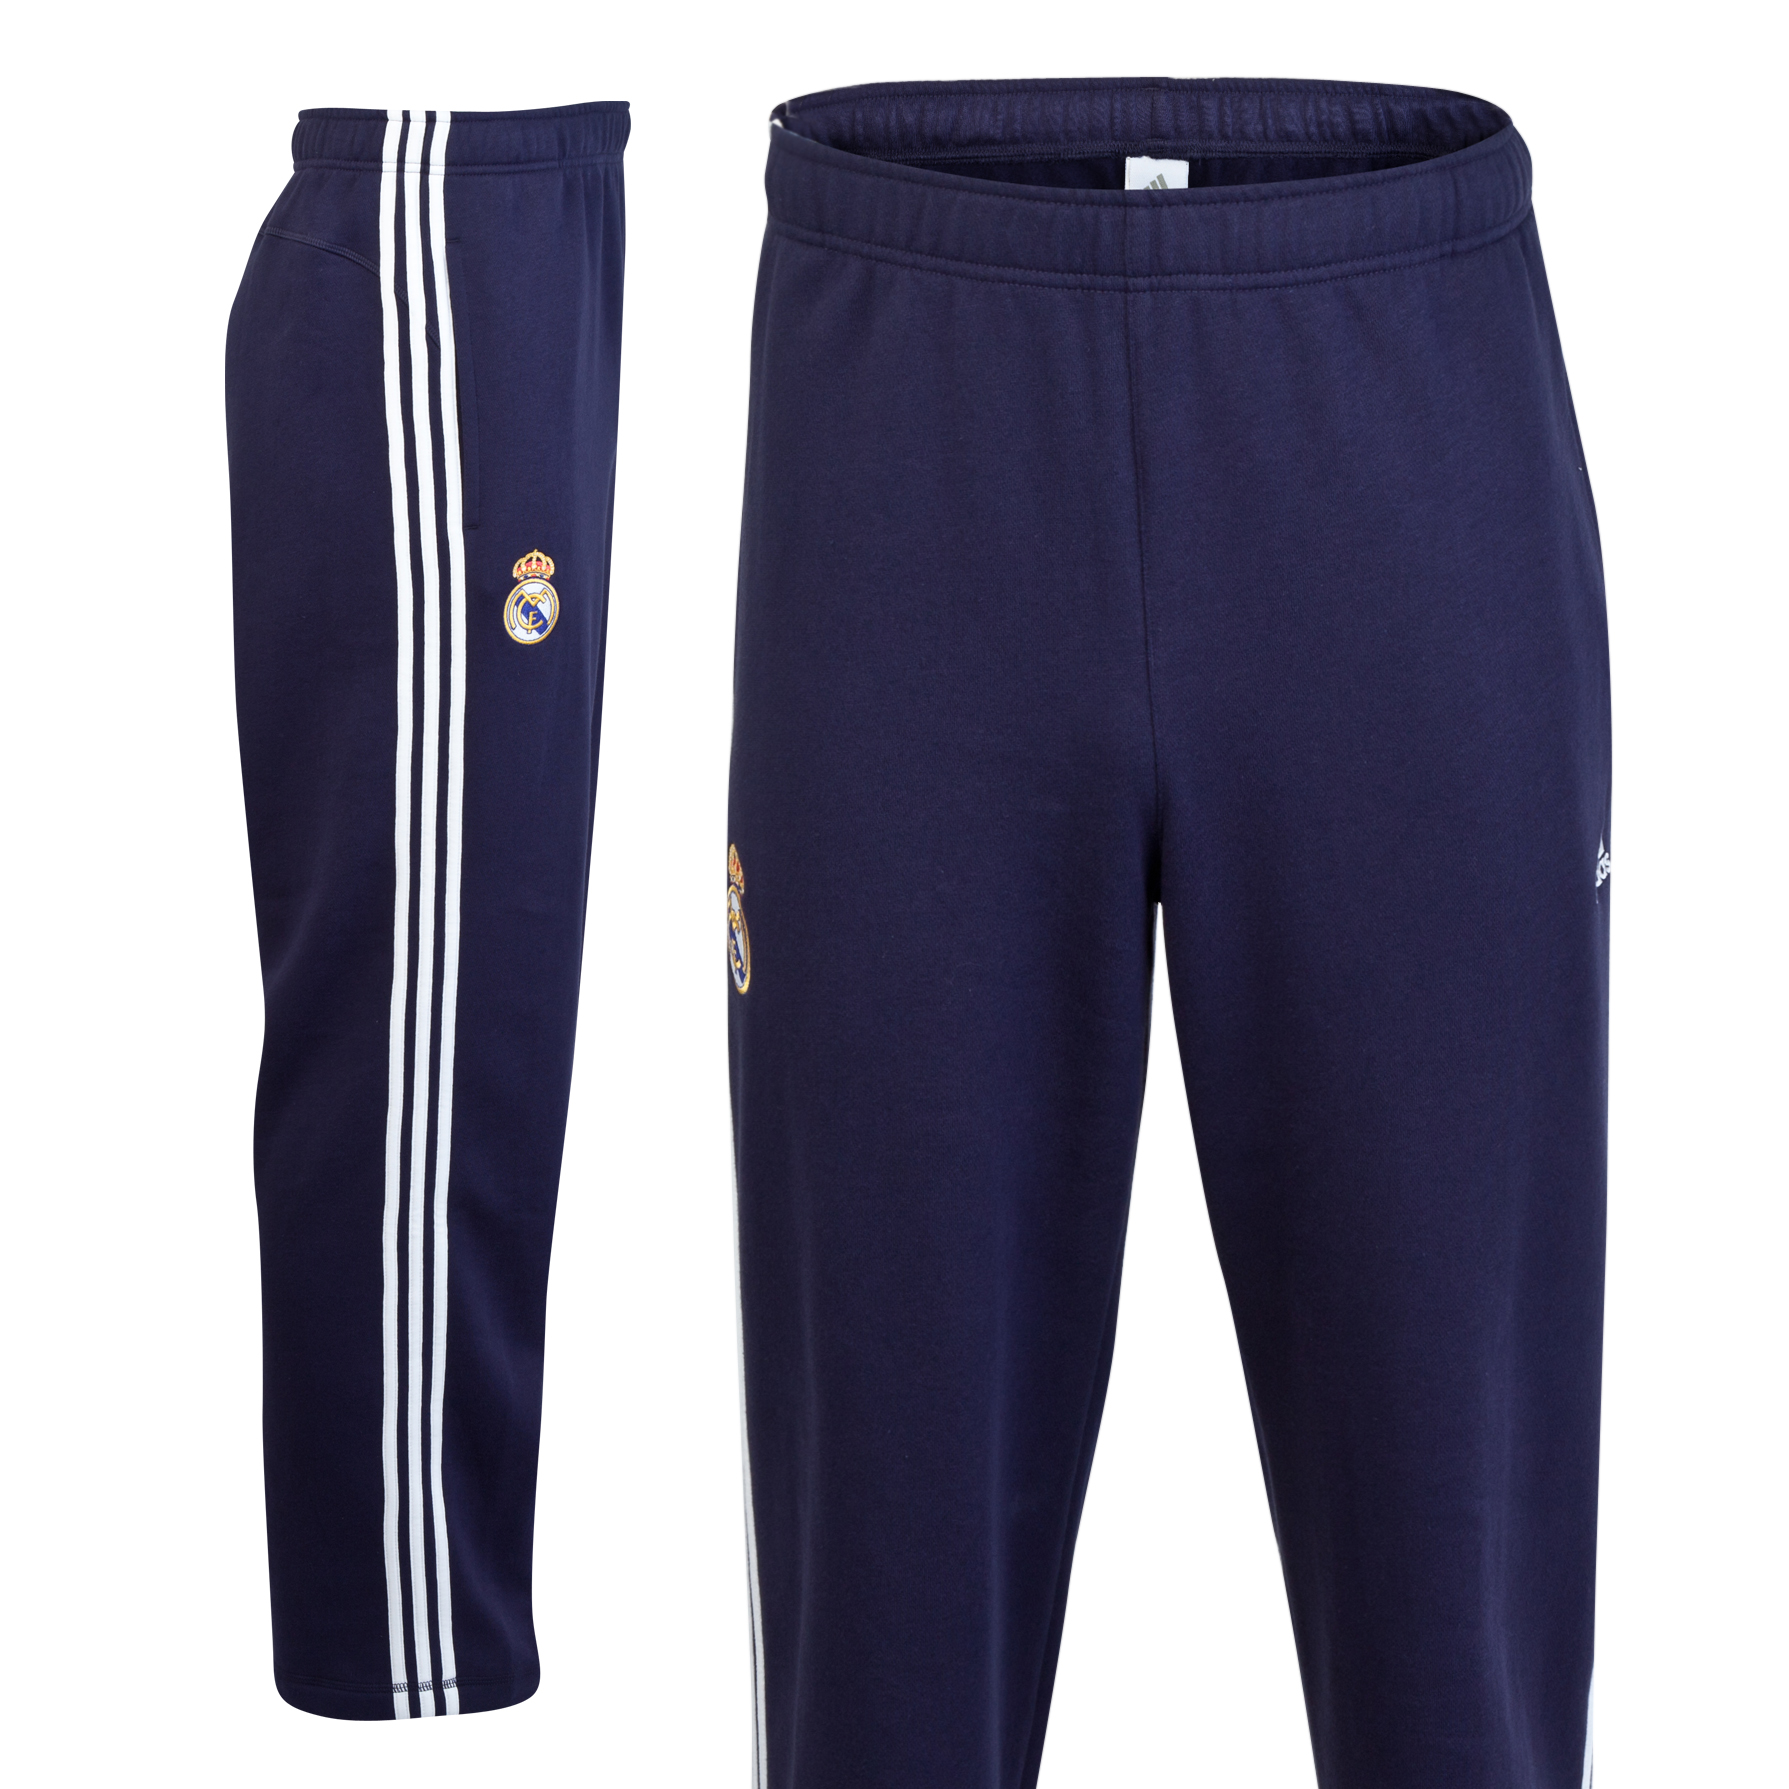 Real Madrid Core Pant - Noble Ink/White